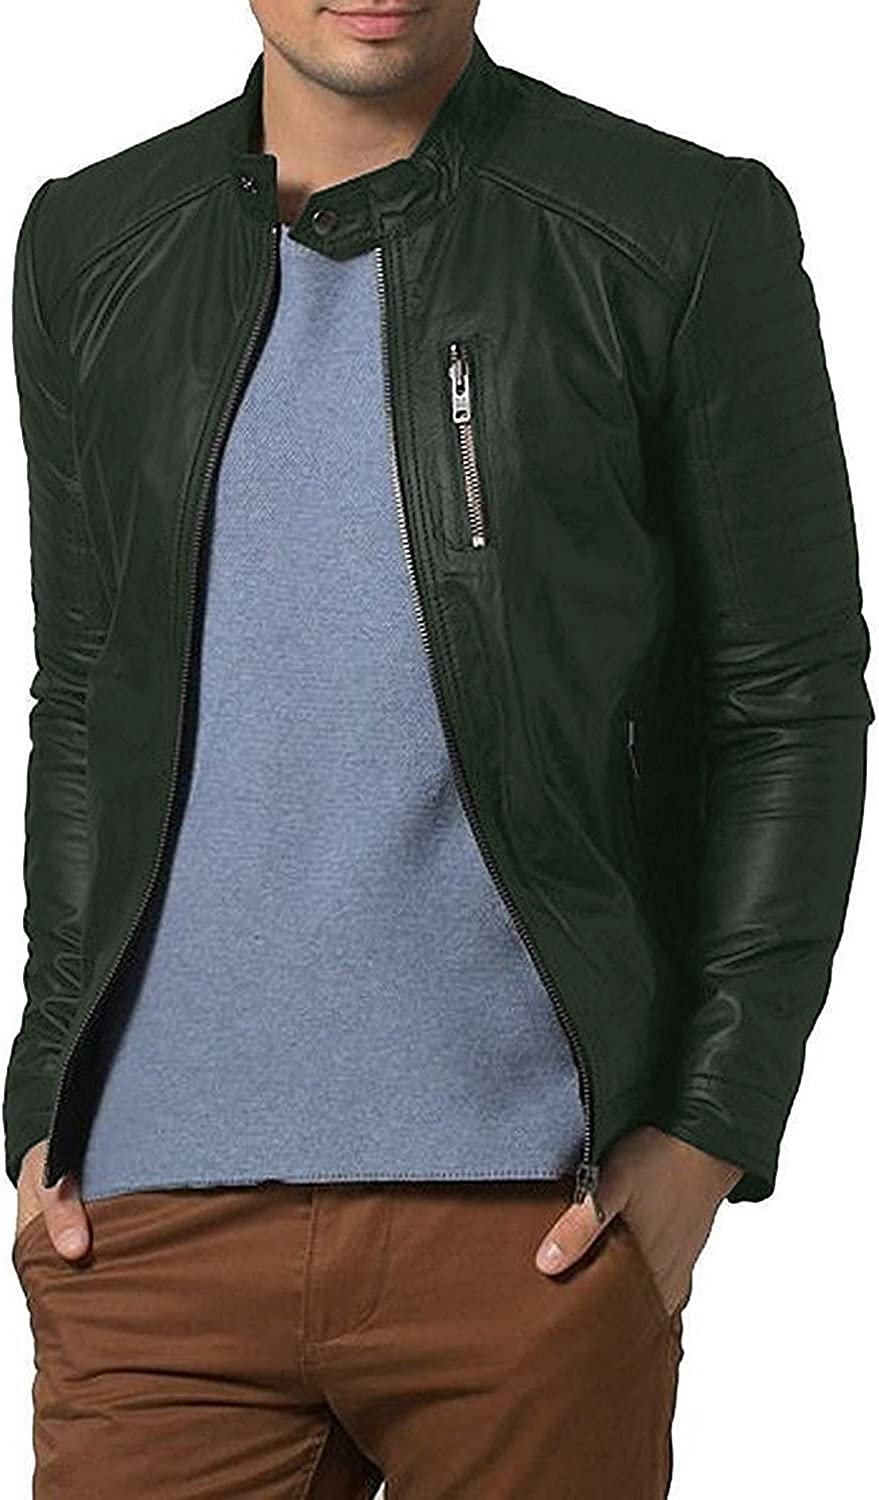 1501193 Black, Racer Jacket Laverapelle Mens Genuine Lambskin Leather Jacket